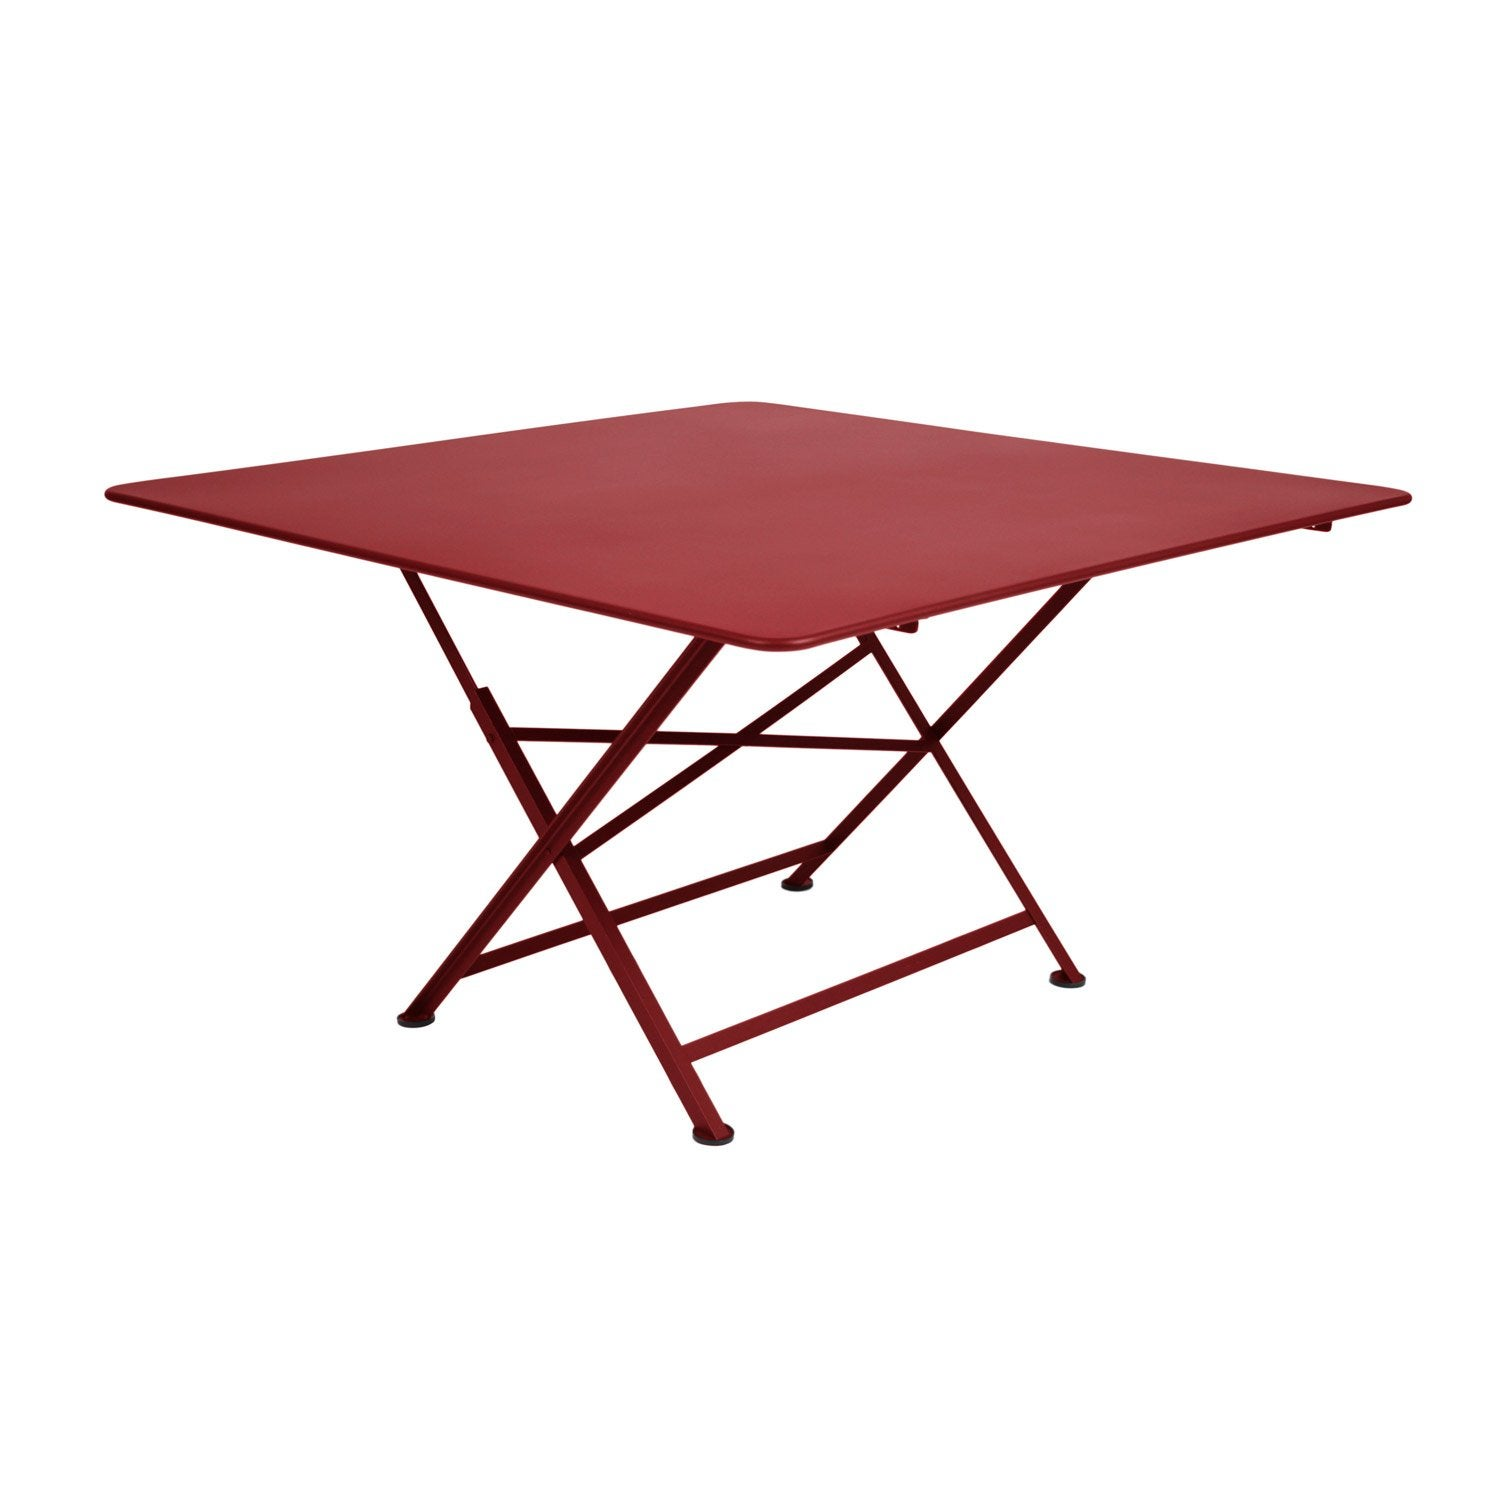 Table de jardin FERMOB Cargo carrée piment 8 personnes | Leroy Merlin